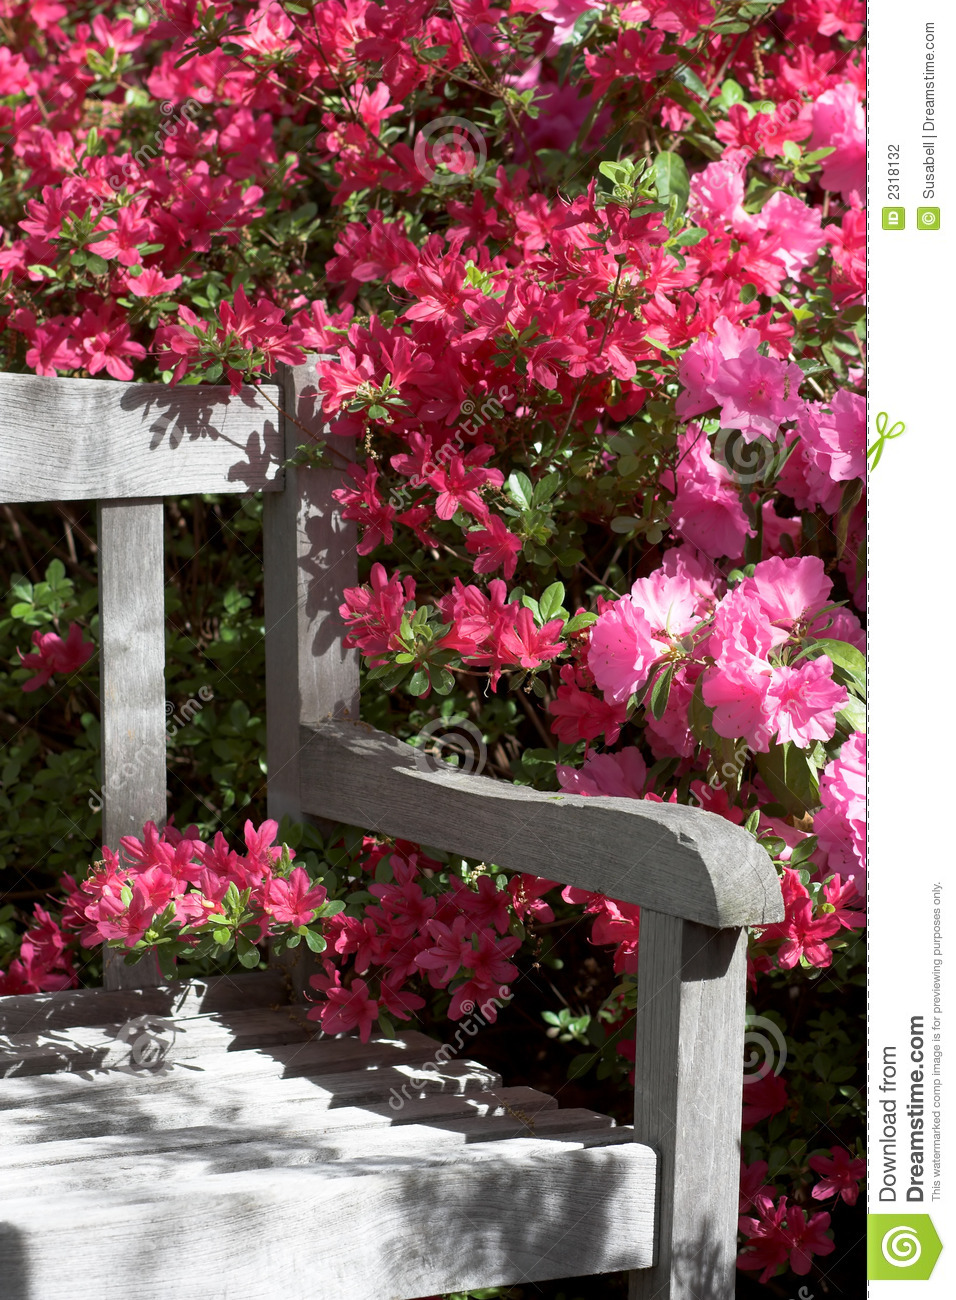 3d Animation Animals Wallpaper Garden Bench And Flowers Stock Photography Image 2318132